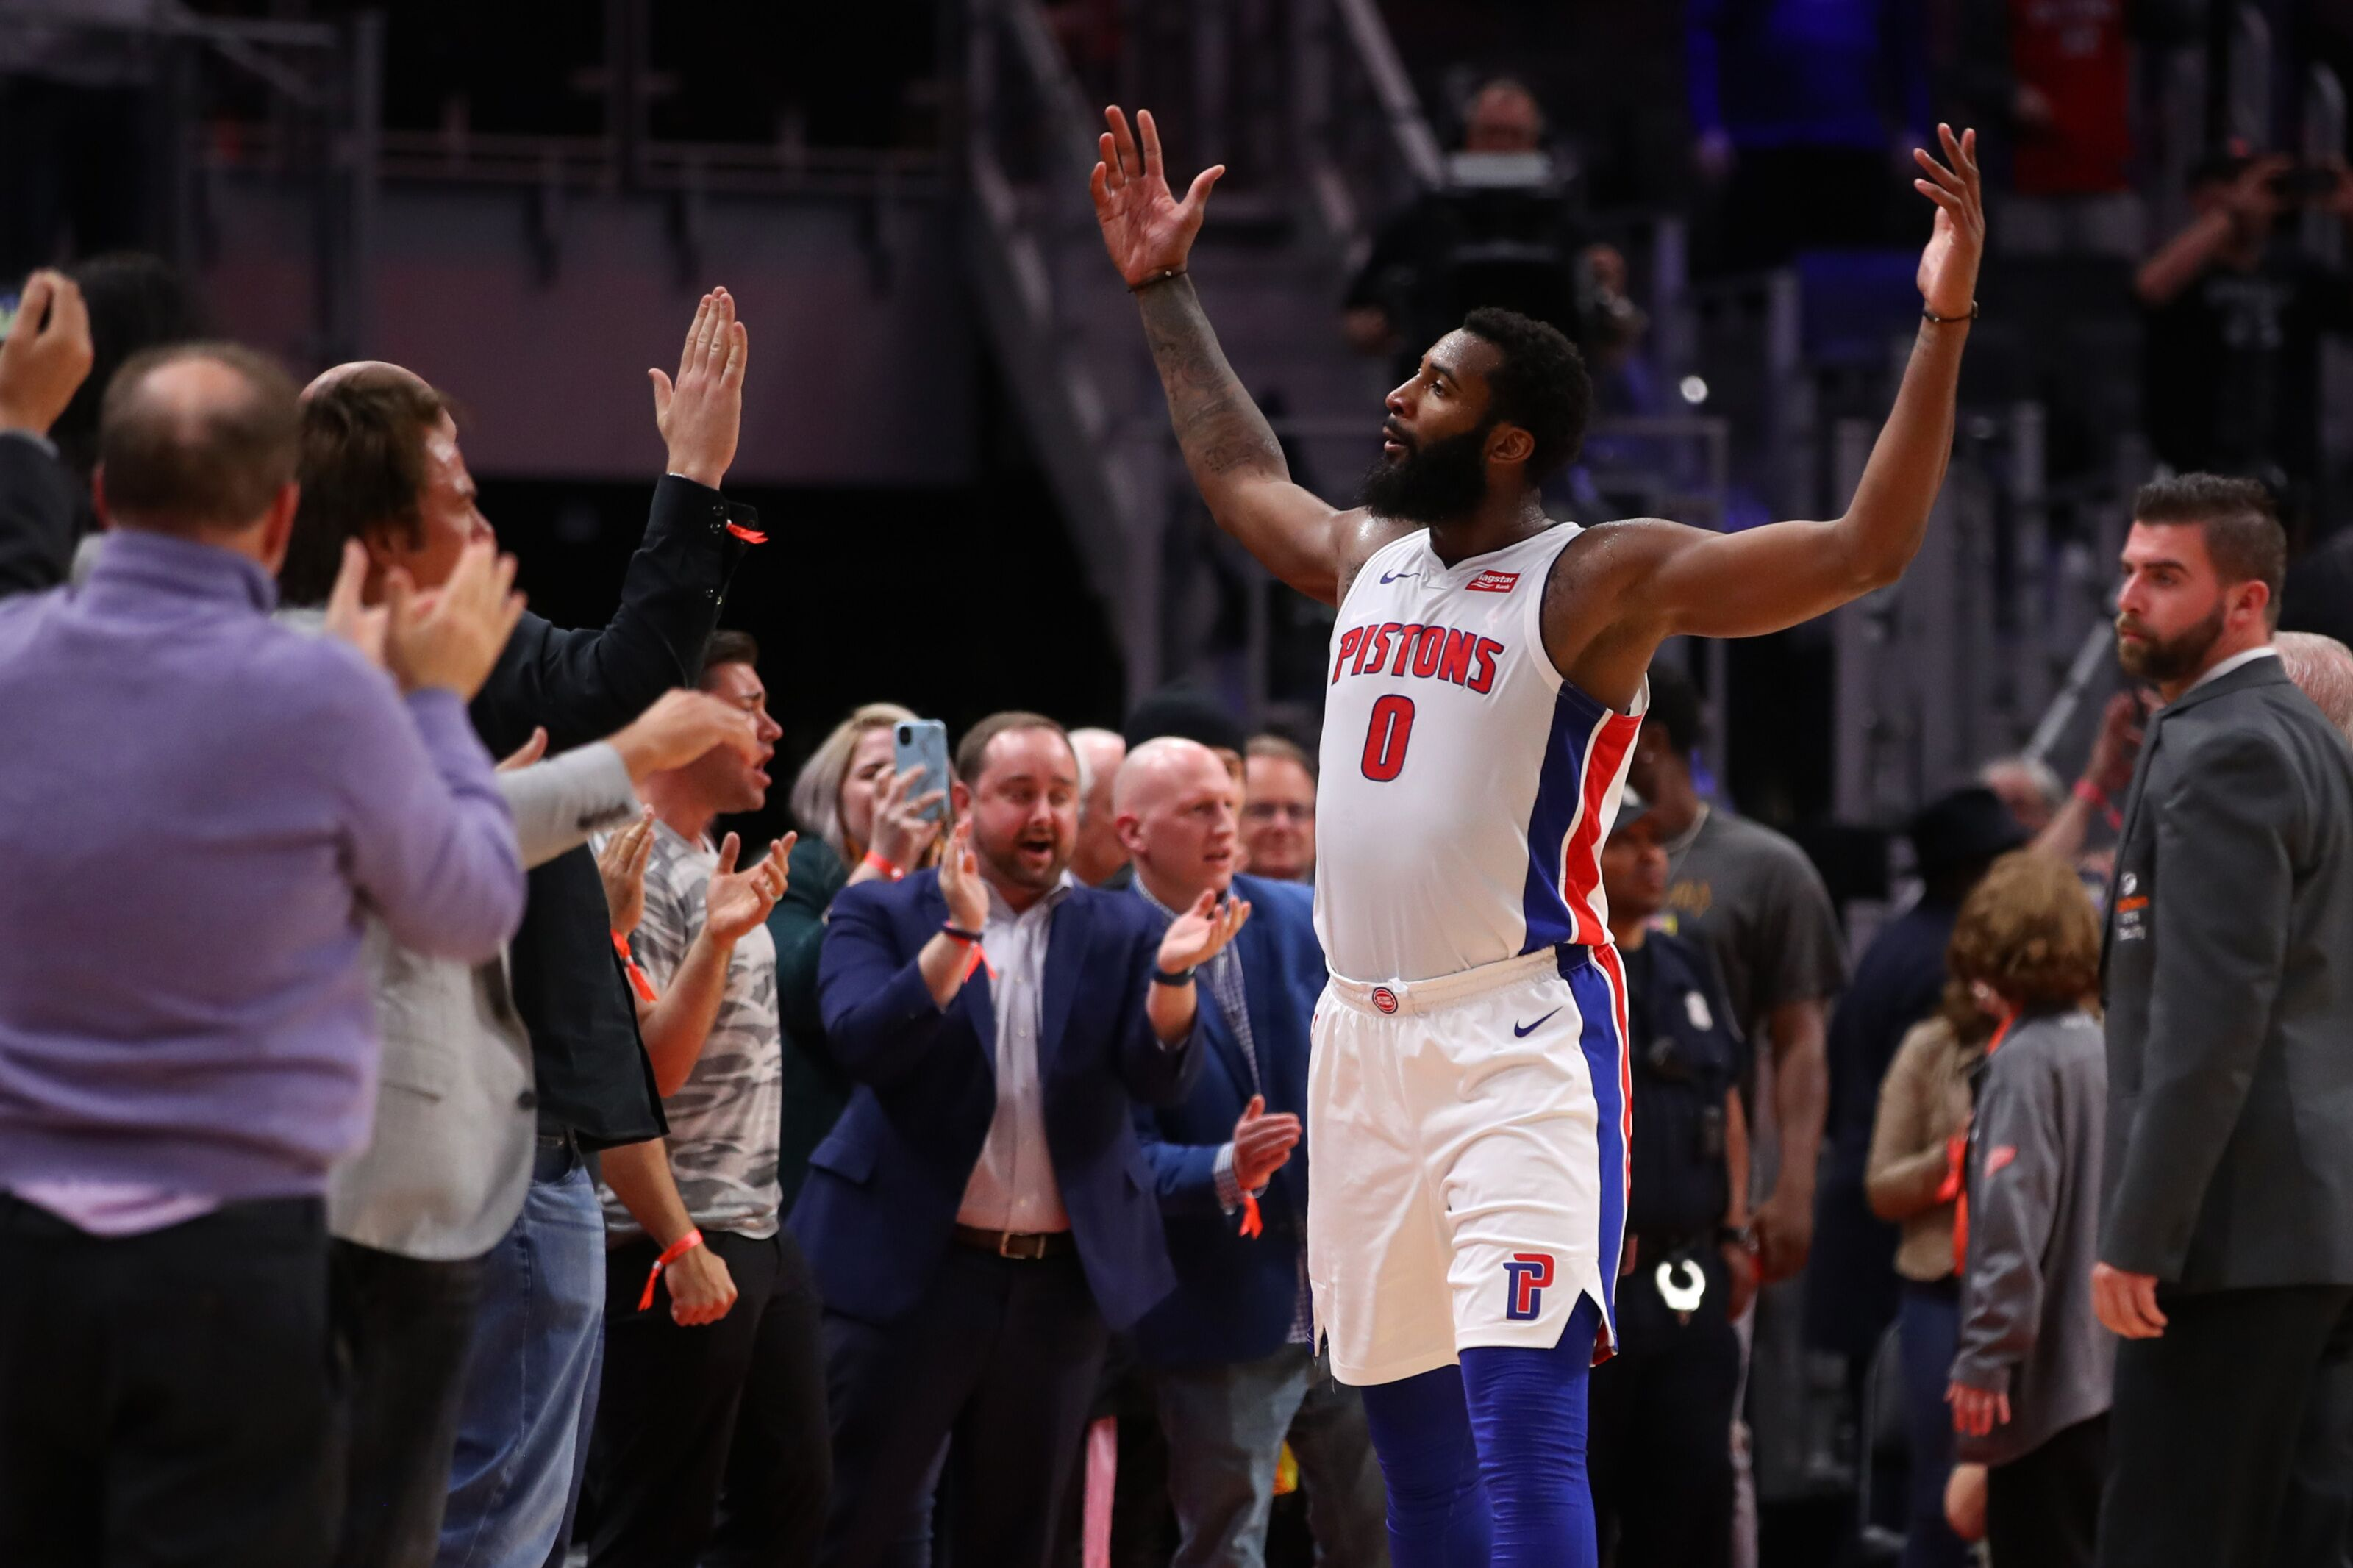 Andre Drummond's modern fit and place in today's NBA